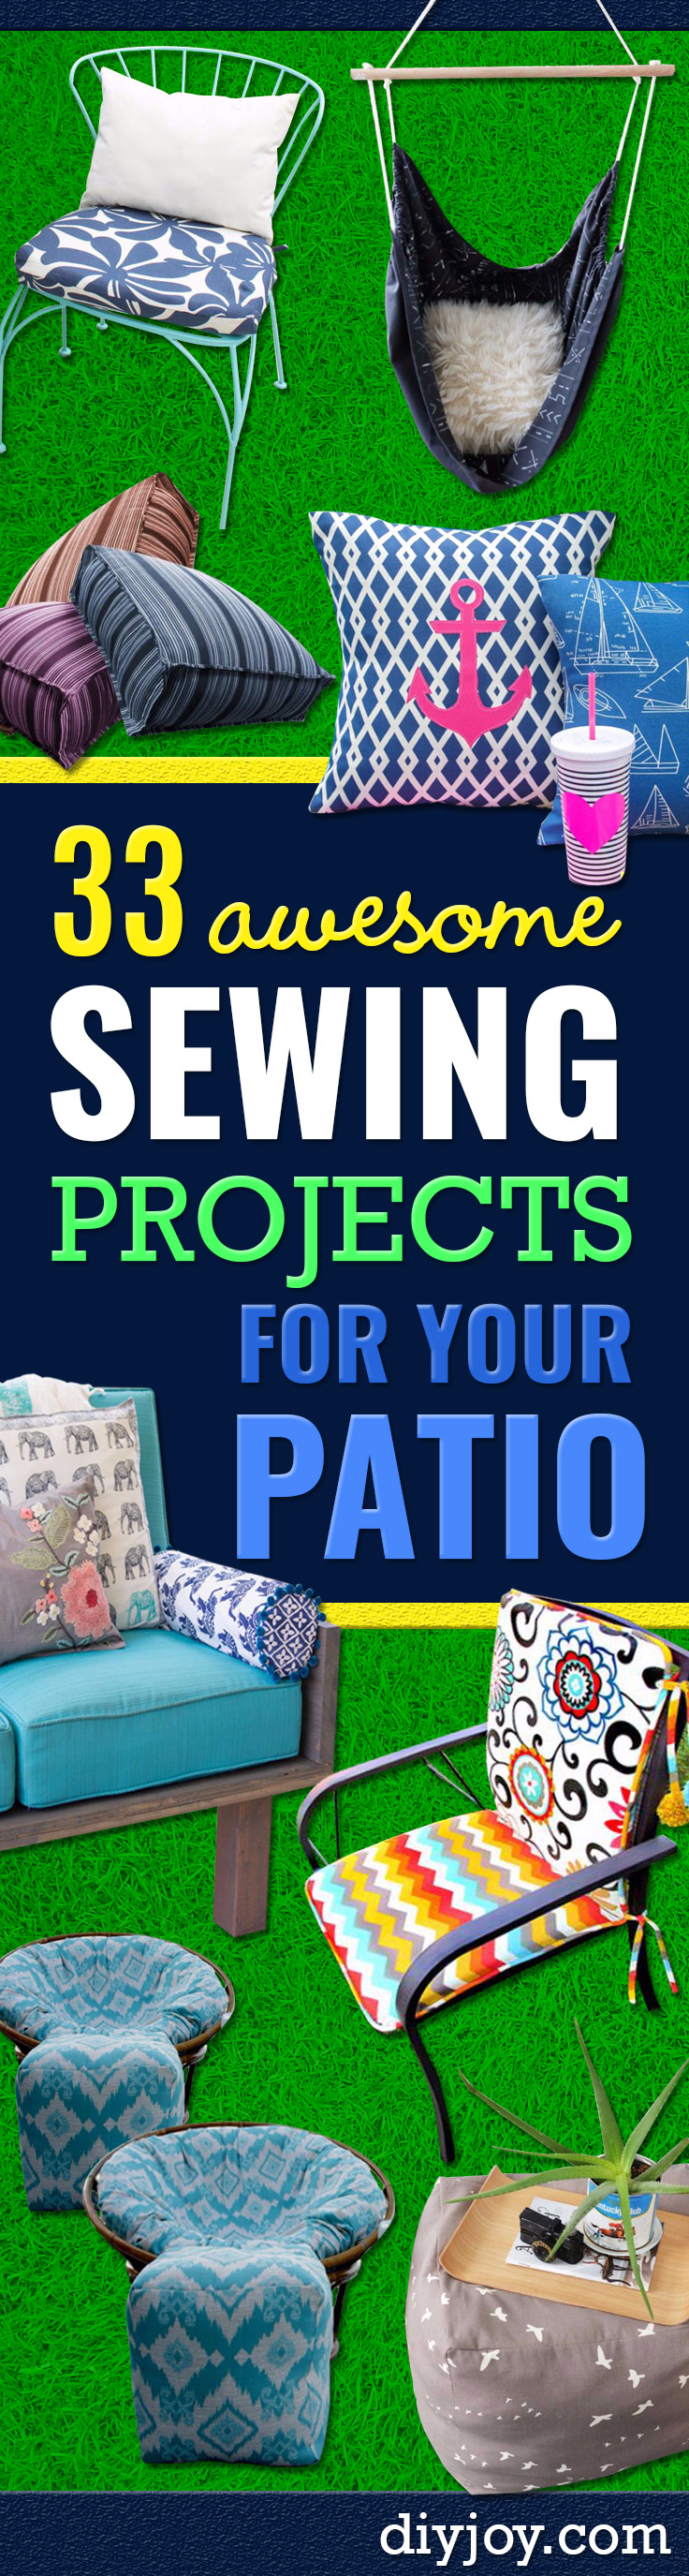 Sewing Projects for The Patio - Step by Step   Instructions and Free Patterns for Cushions, Pillows, Seating, Sofa   and Outdoor Patio Decor - Easy Sewing Tutorials for Beginners -   Creative and Cheap Outdoor Ideas for Those Who Love to Sew - DIY   Projects and Crafts by DIY JOY http://diyjoy.com/sewing-projects-  patio